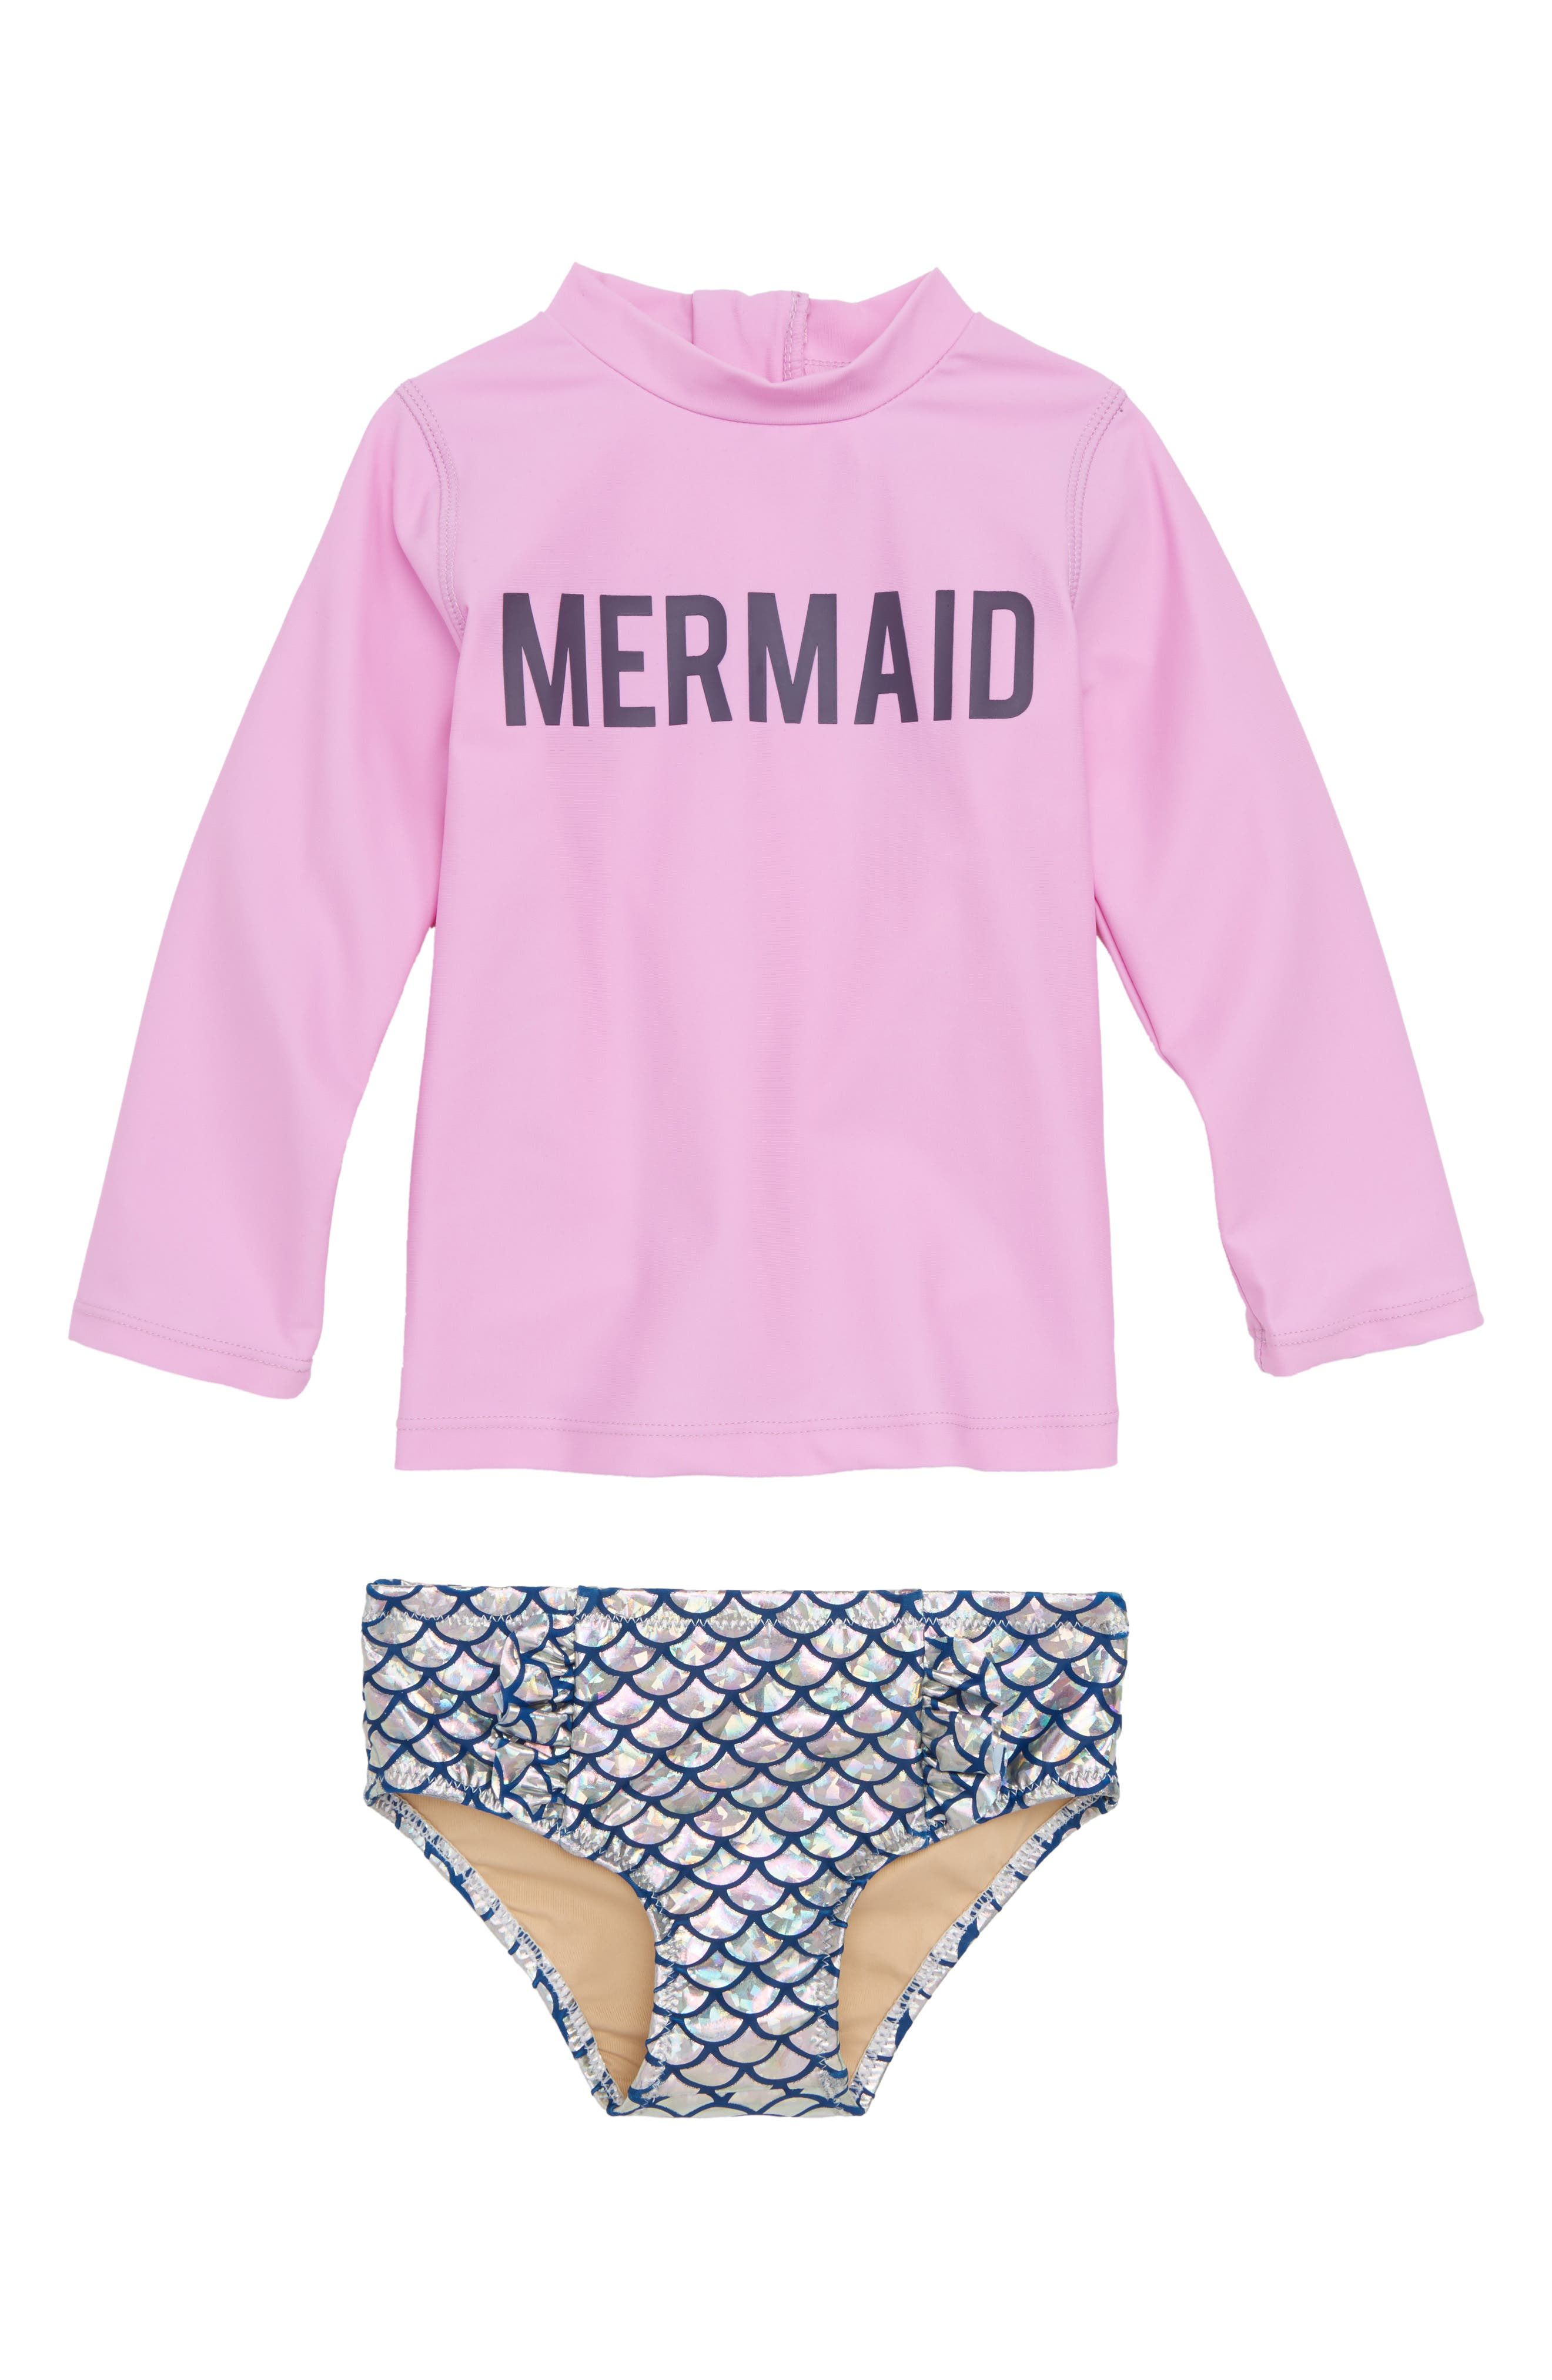 Mermaid Magic Rashguard Two-Piece Swimsuit,                         Main,                         color, Purple